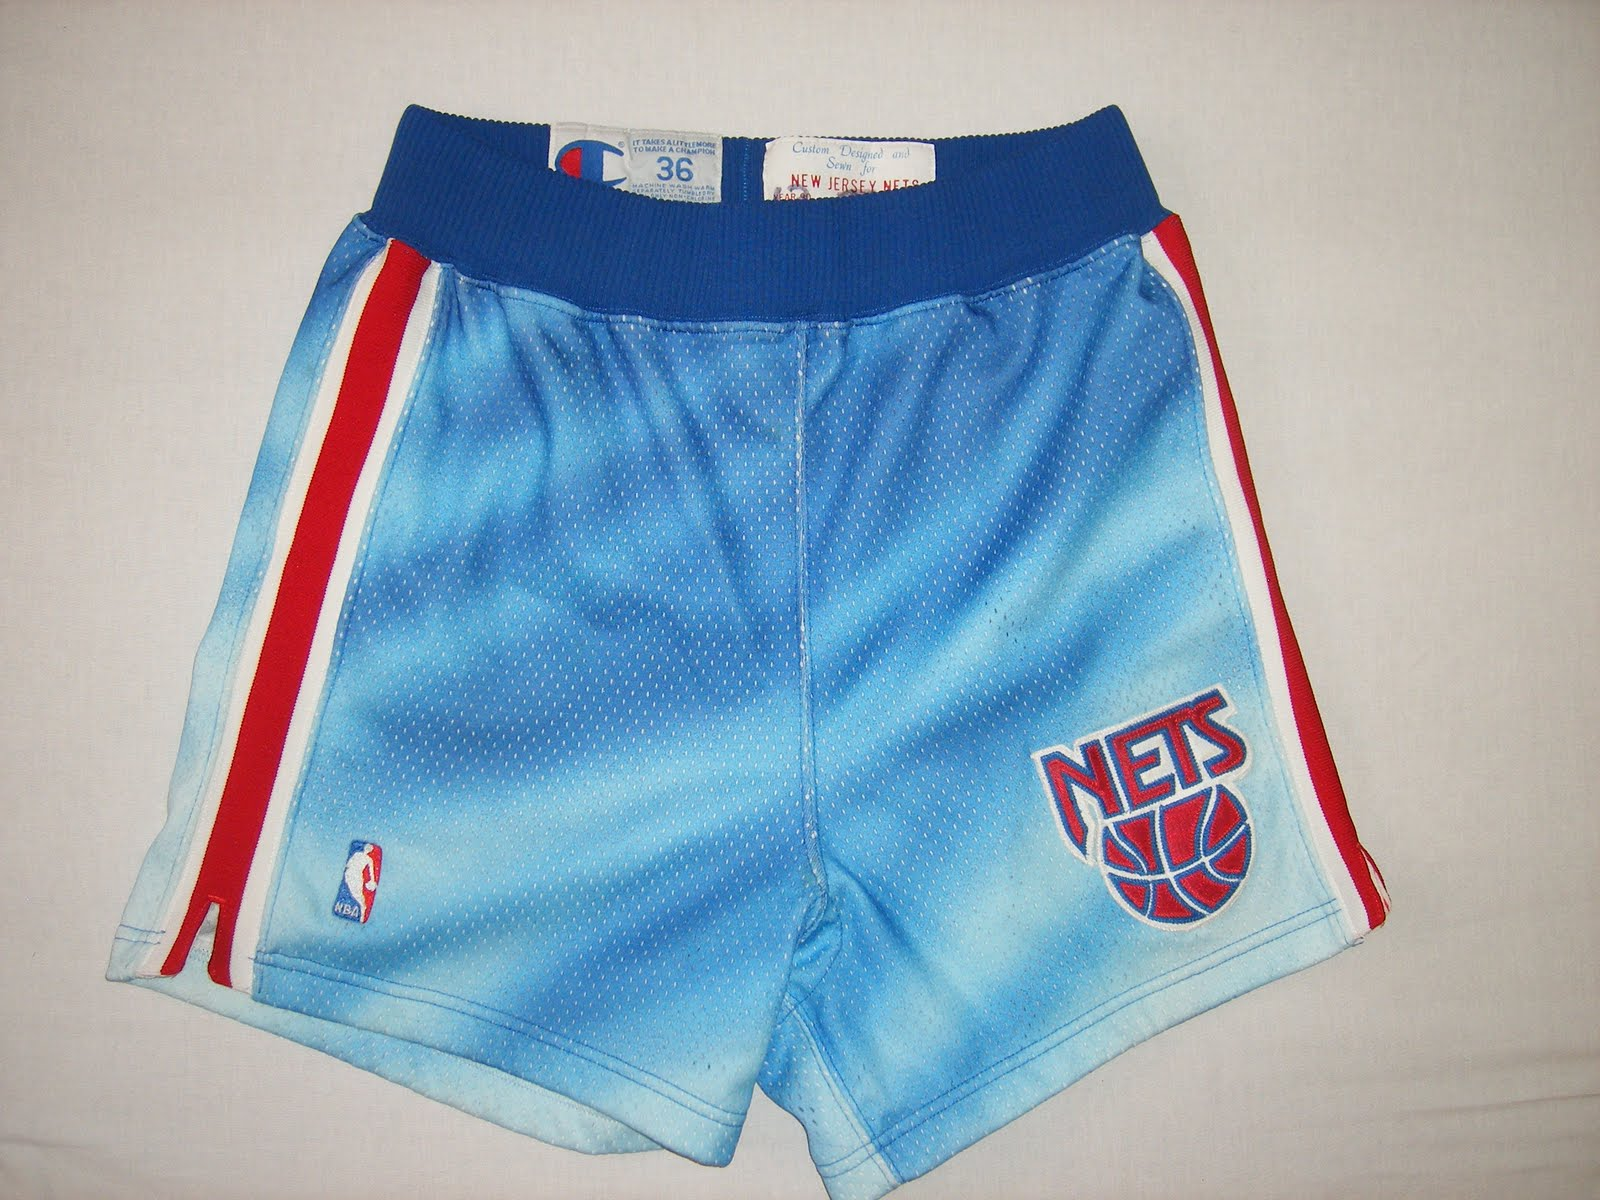 caca7480522 Check out these sick shorts from the New Jersey Nets circa 1990-91. These  were some of the ugliest uniforms ever, which is probably why I love them.